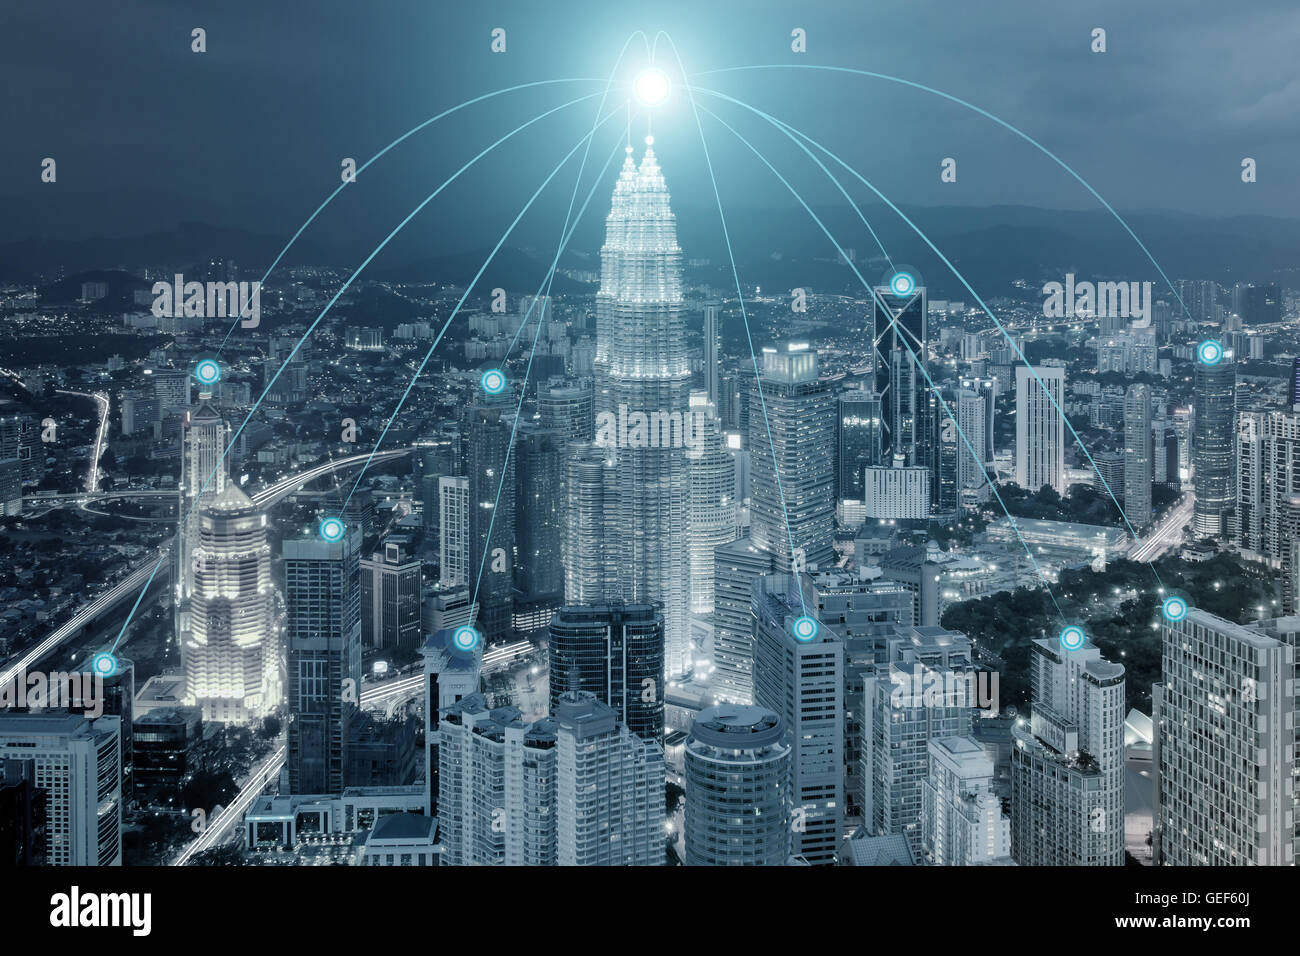 Cityscape and network connection use for global network connection partnership concept. - Stock Image